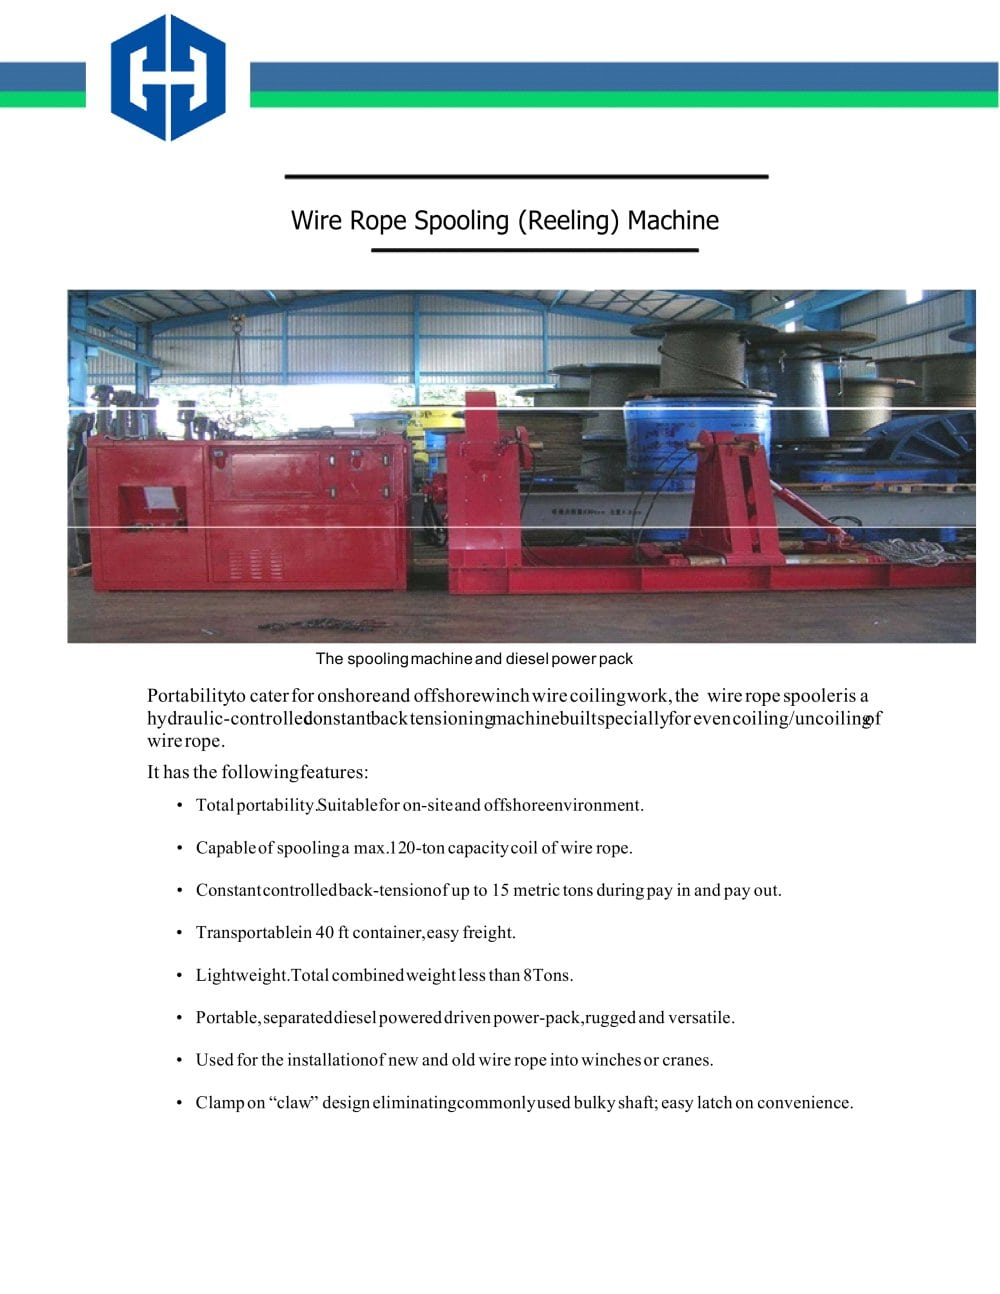 Cataloge of Spooling Machine - Chongqing Guanheng Technology ...